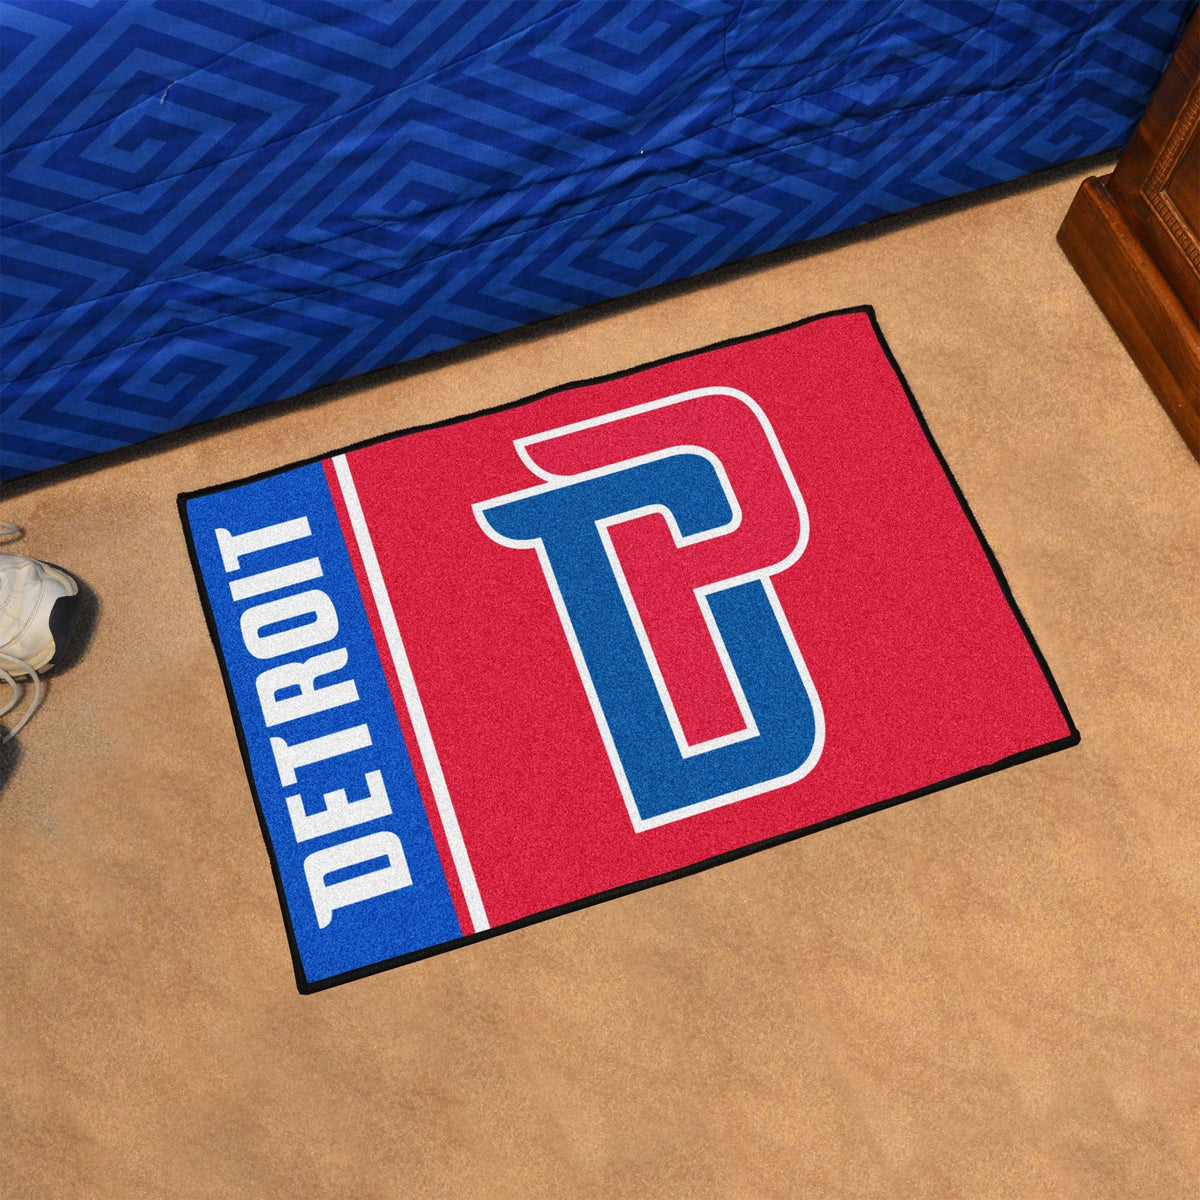 NBA - Uniform Starter Mat NBA Mats, Rectangular Mats, Uniform Starter Mat, NBA, Home Fan Mats Detroit Pistons